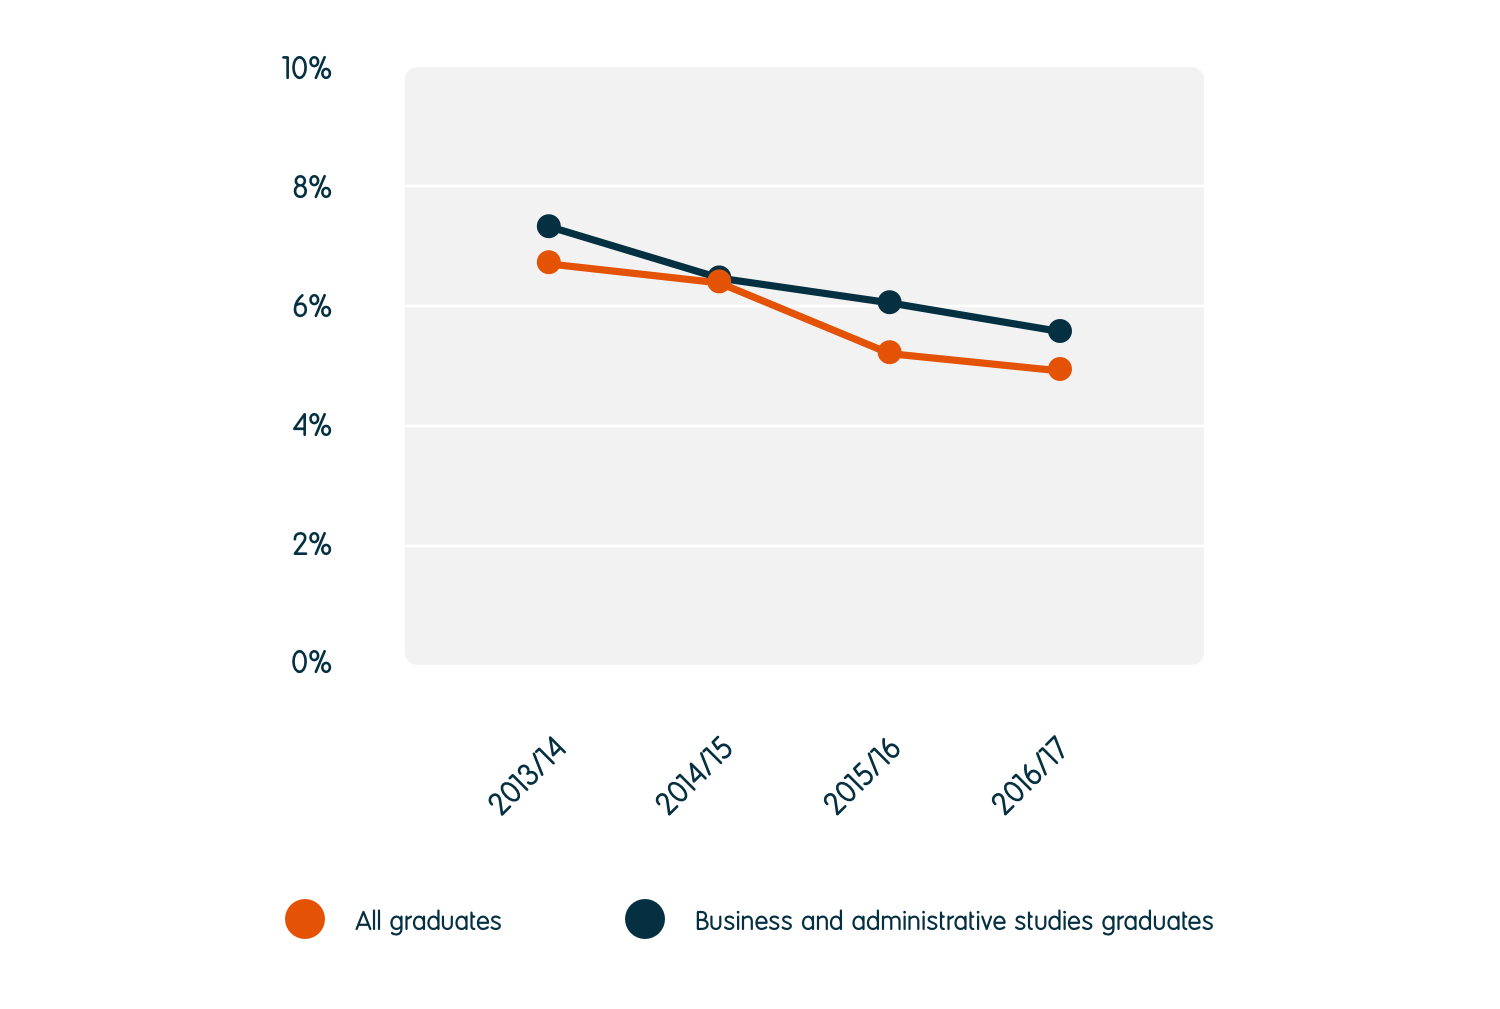 The unemployment rate for business and administrative studies graduates reduced from 7.5% in 2013/14 to 5.7% in 2016/17. This is higher than the 5.1% unemployment rate for all graduates.